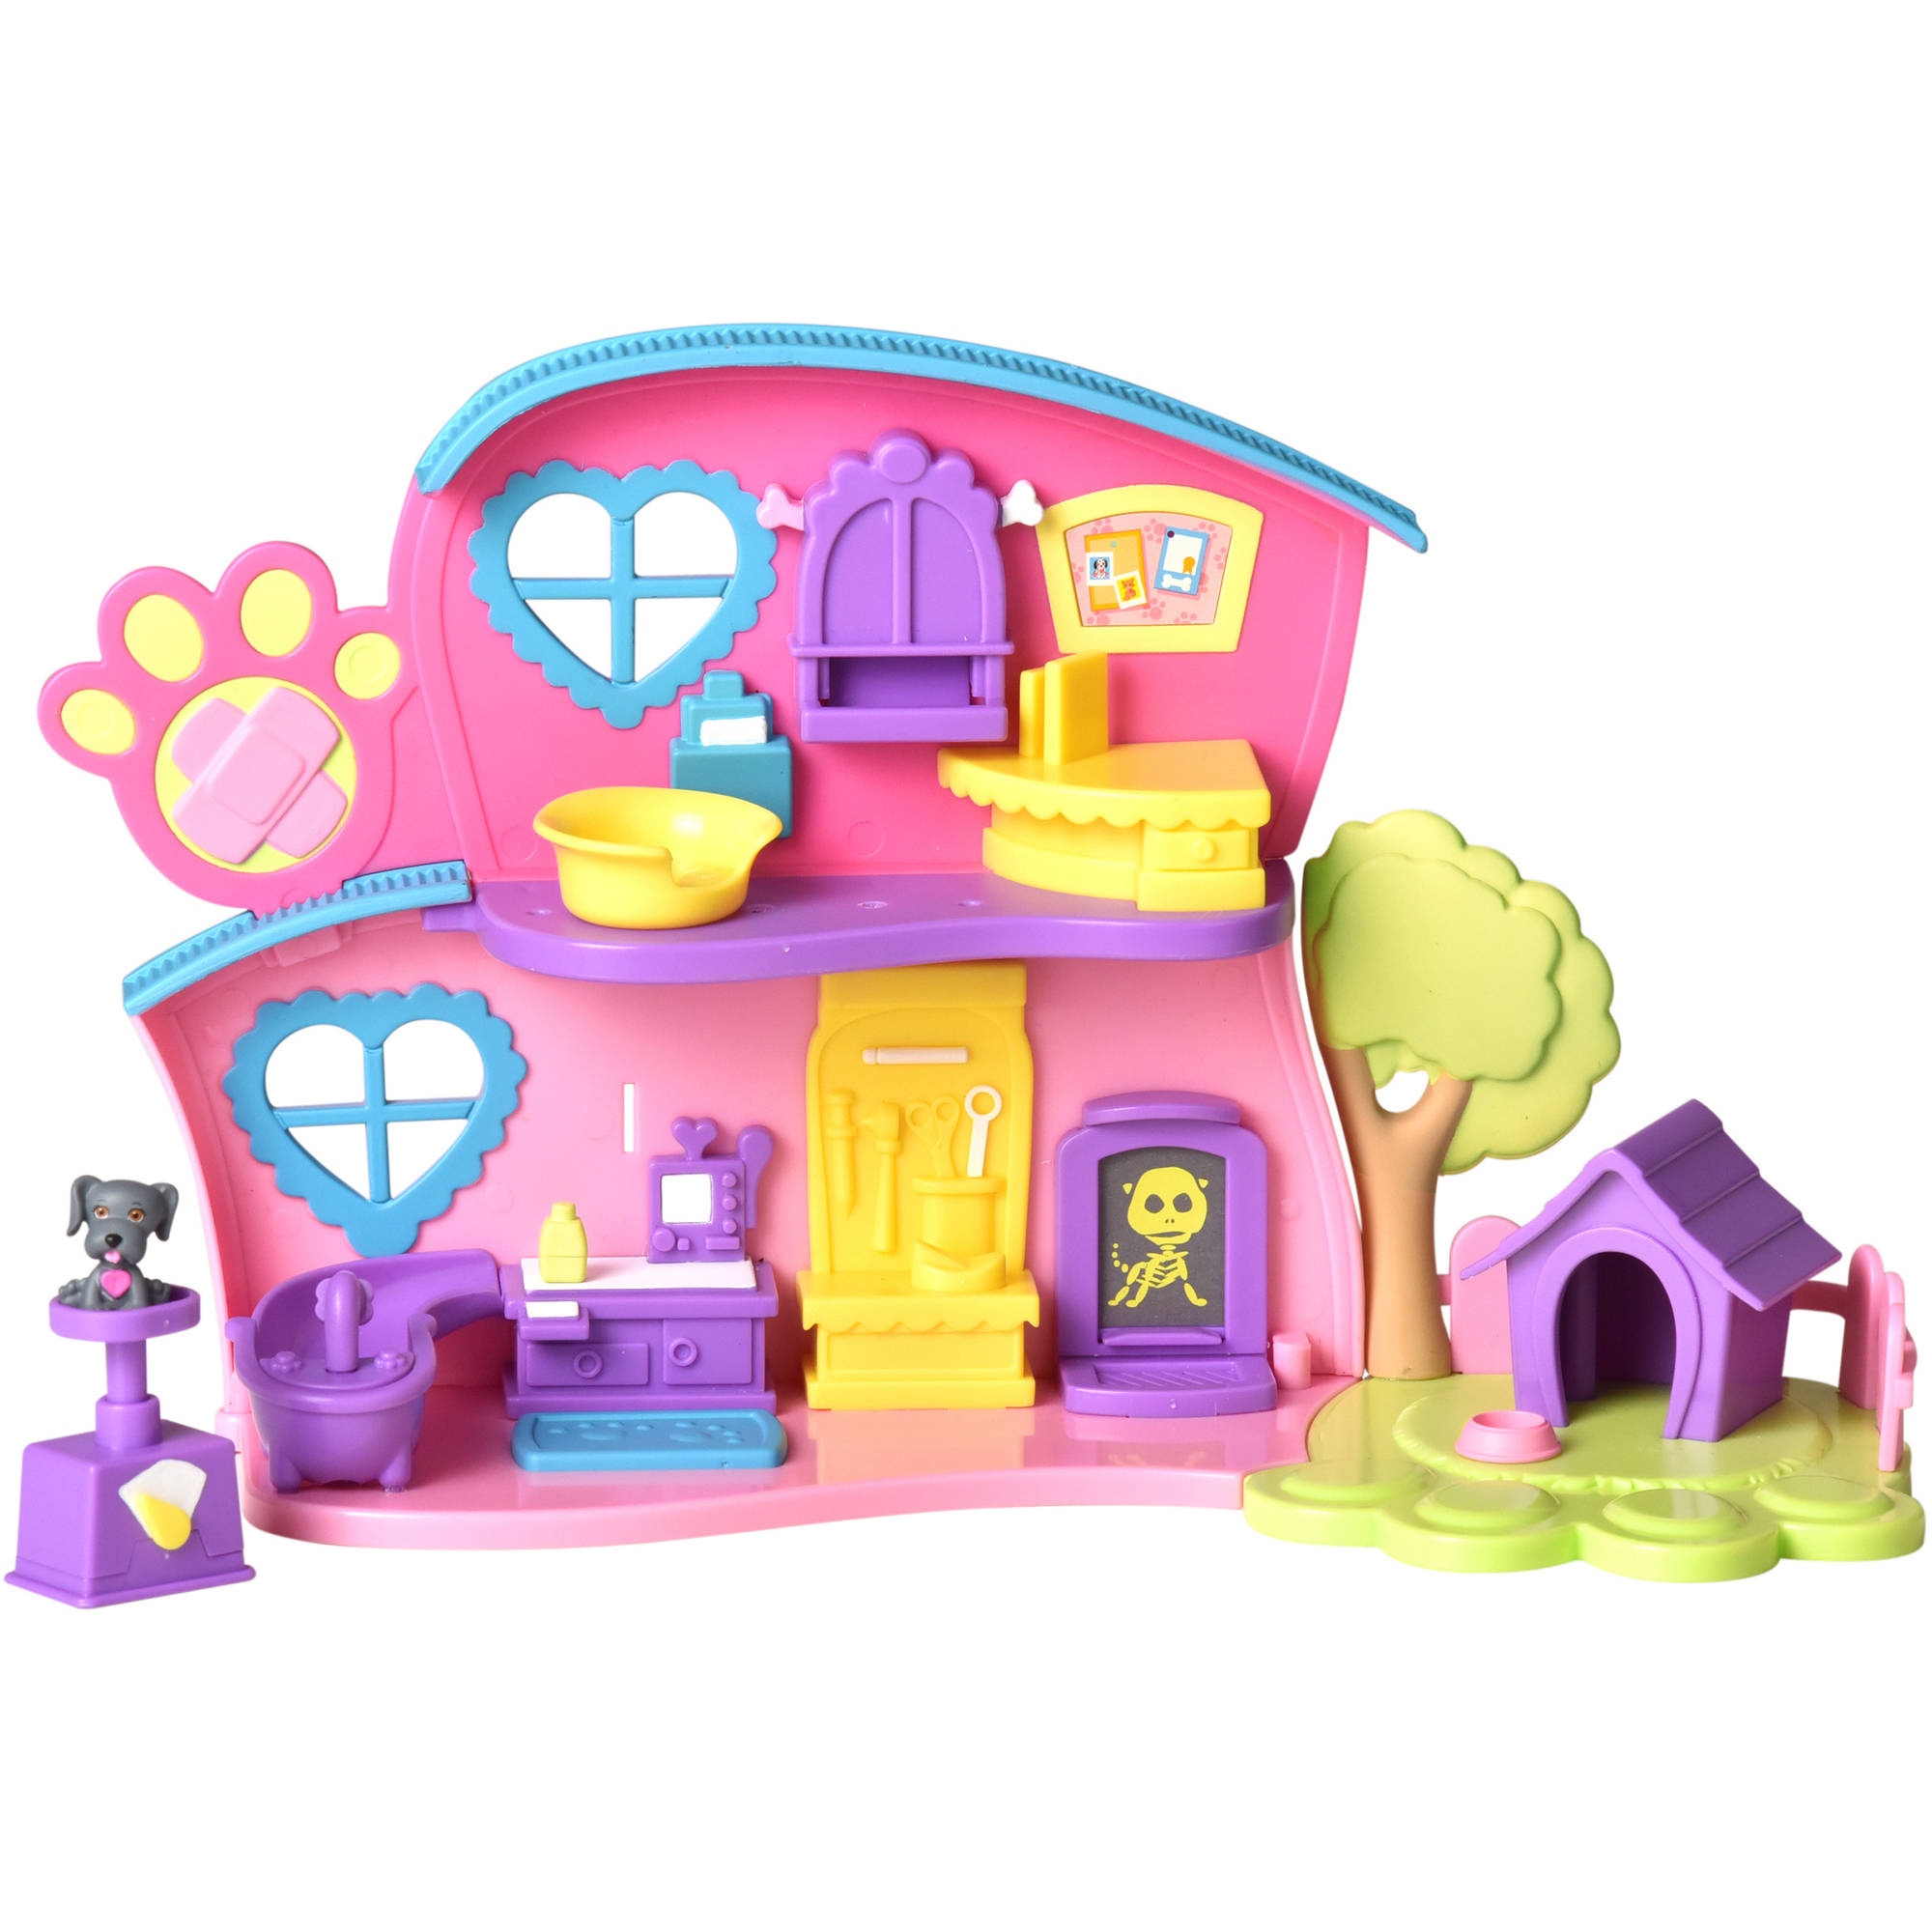 Cabbage Patch Kids Lil Patch Vet Center Play Set